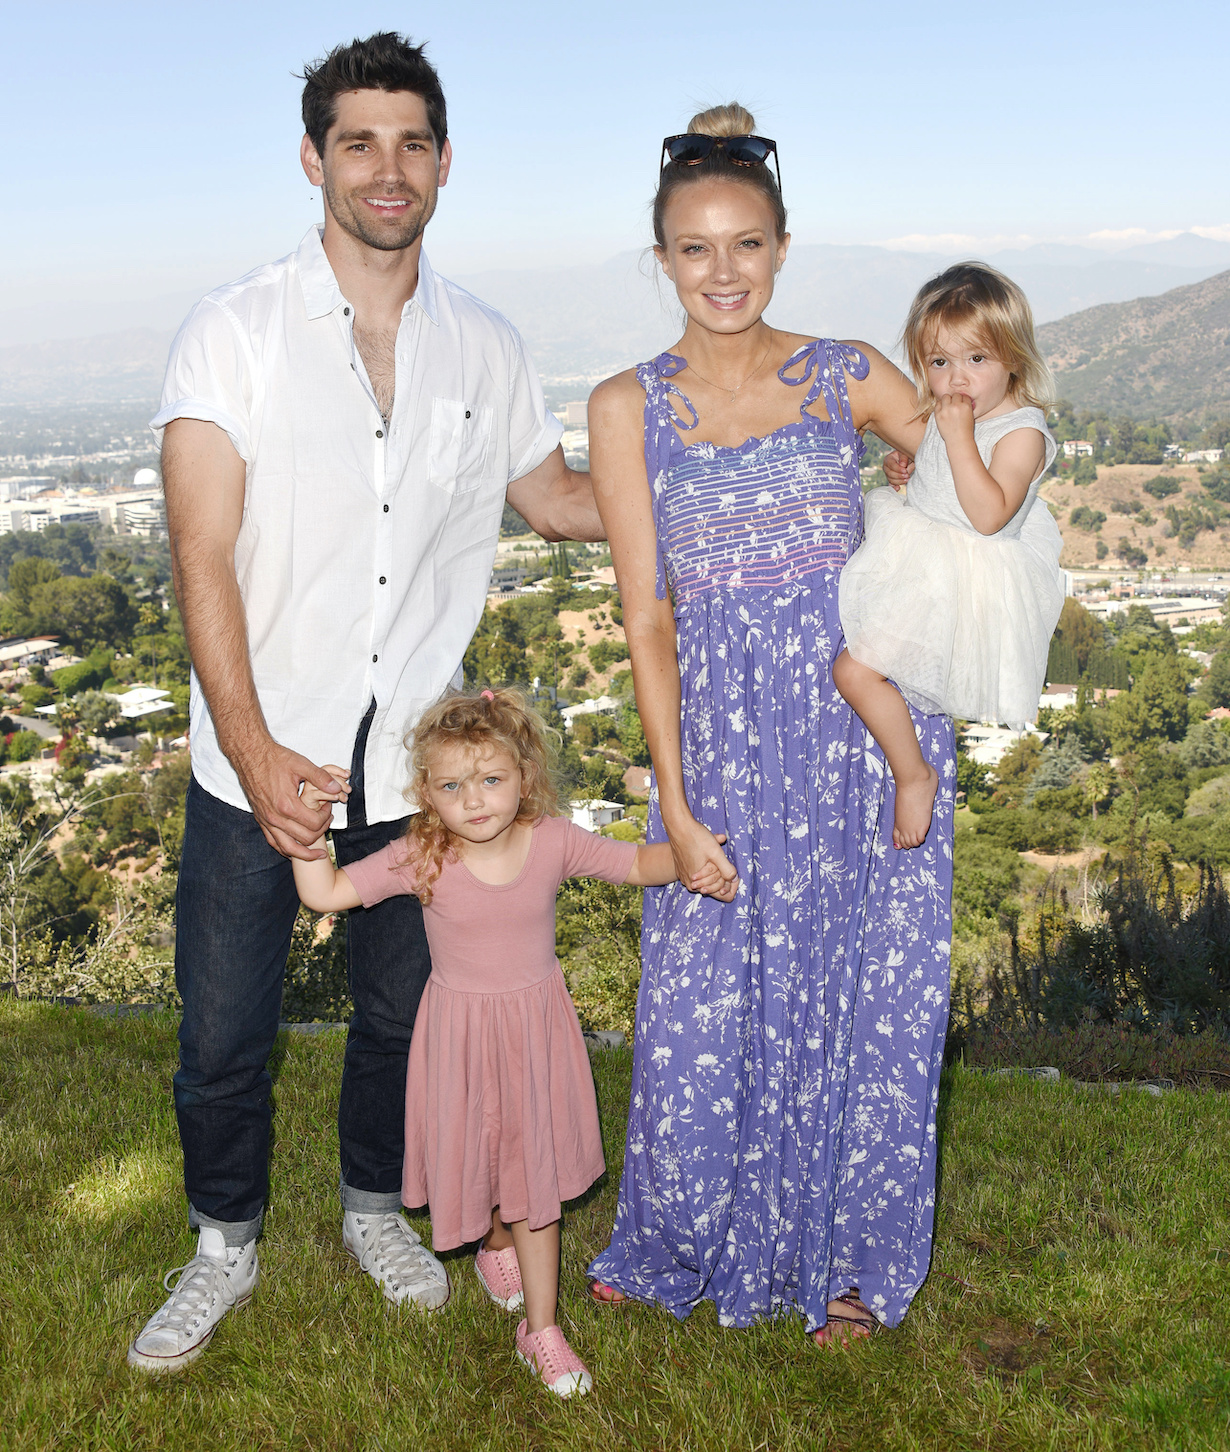 Melissa Ordway, Justin Gaston,Olivia Gaston, Sophie Gaston Kelly Krugers Baby Shower at a Private Residence in Los Angeles, California on July 13, 2019© Jill Johnson/jpistudios.com310-657-9661